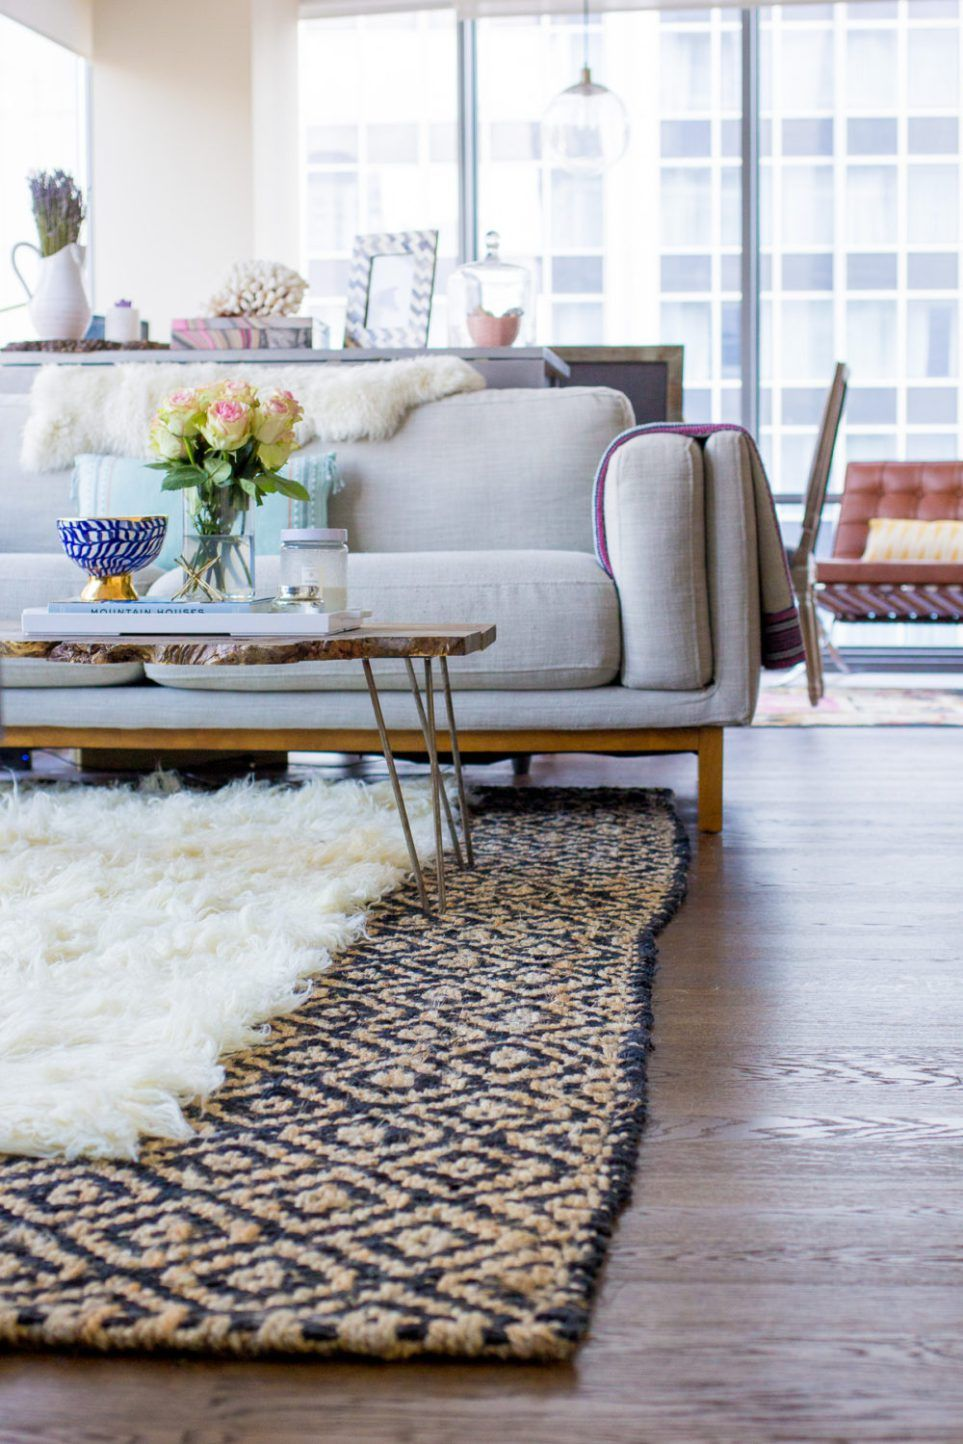 How To Layer Rugs Like A Designer Living Room Decor Cozy Rugs In Living Room Layered Rugs Living Room